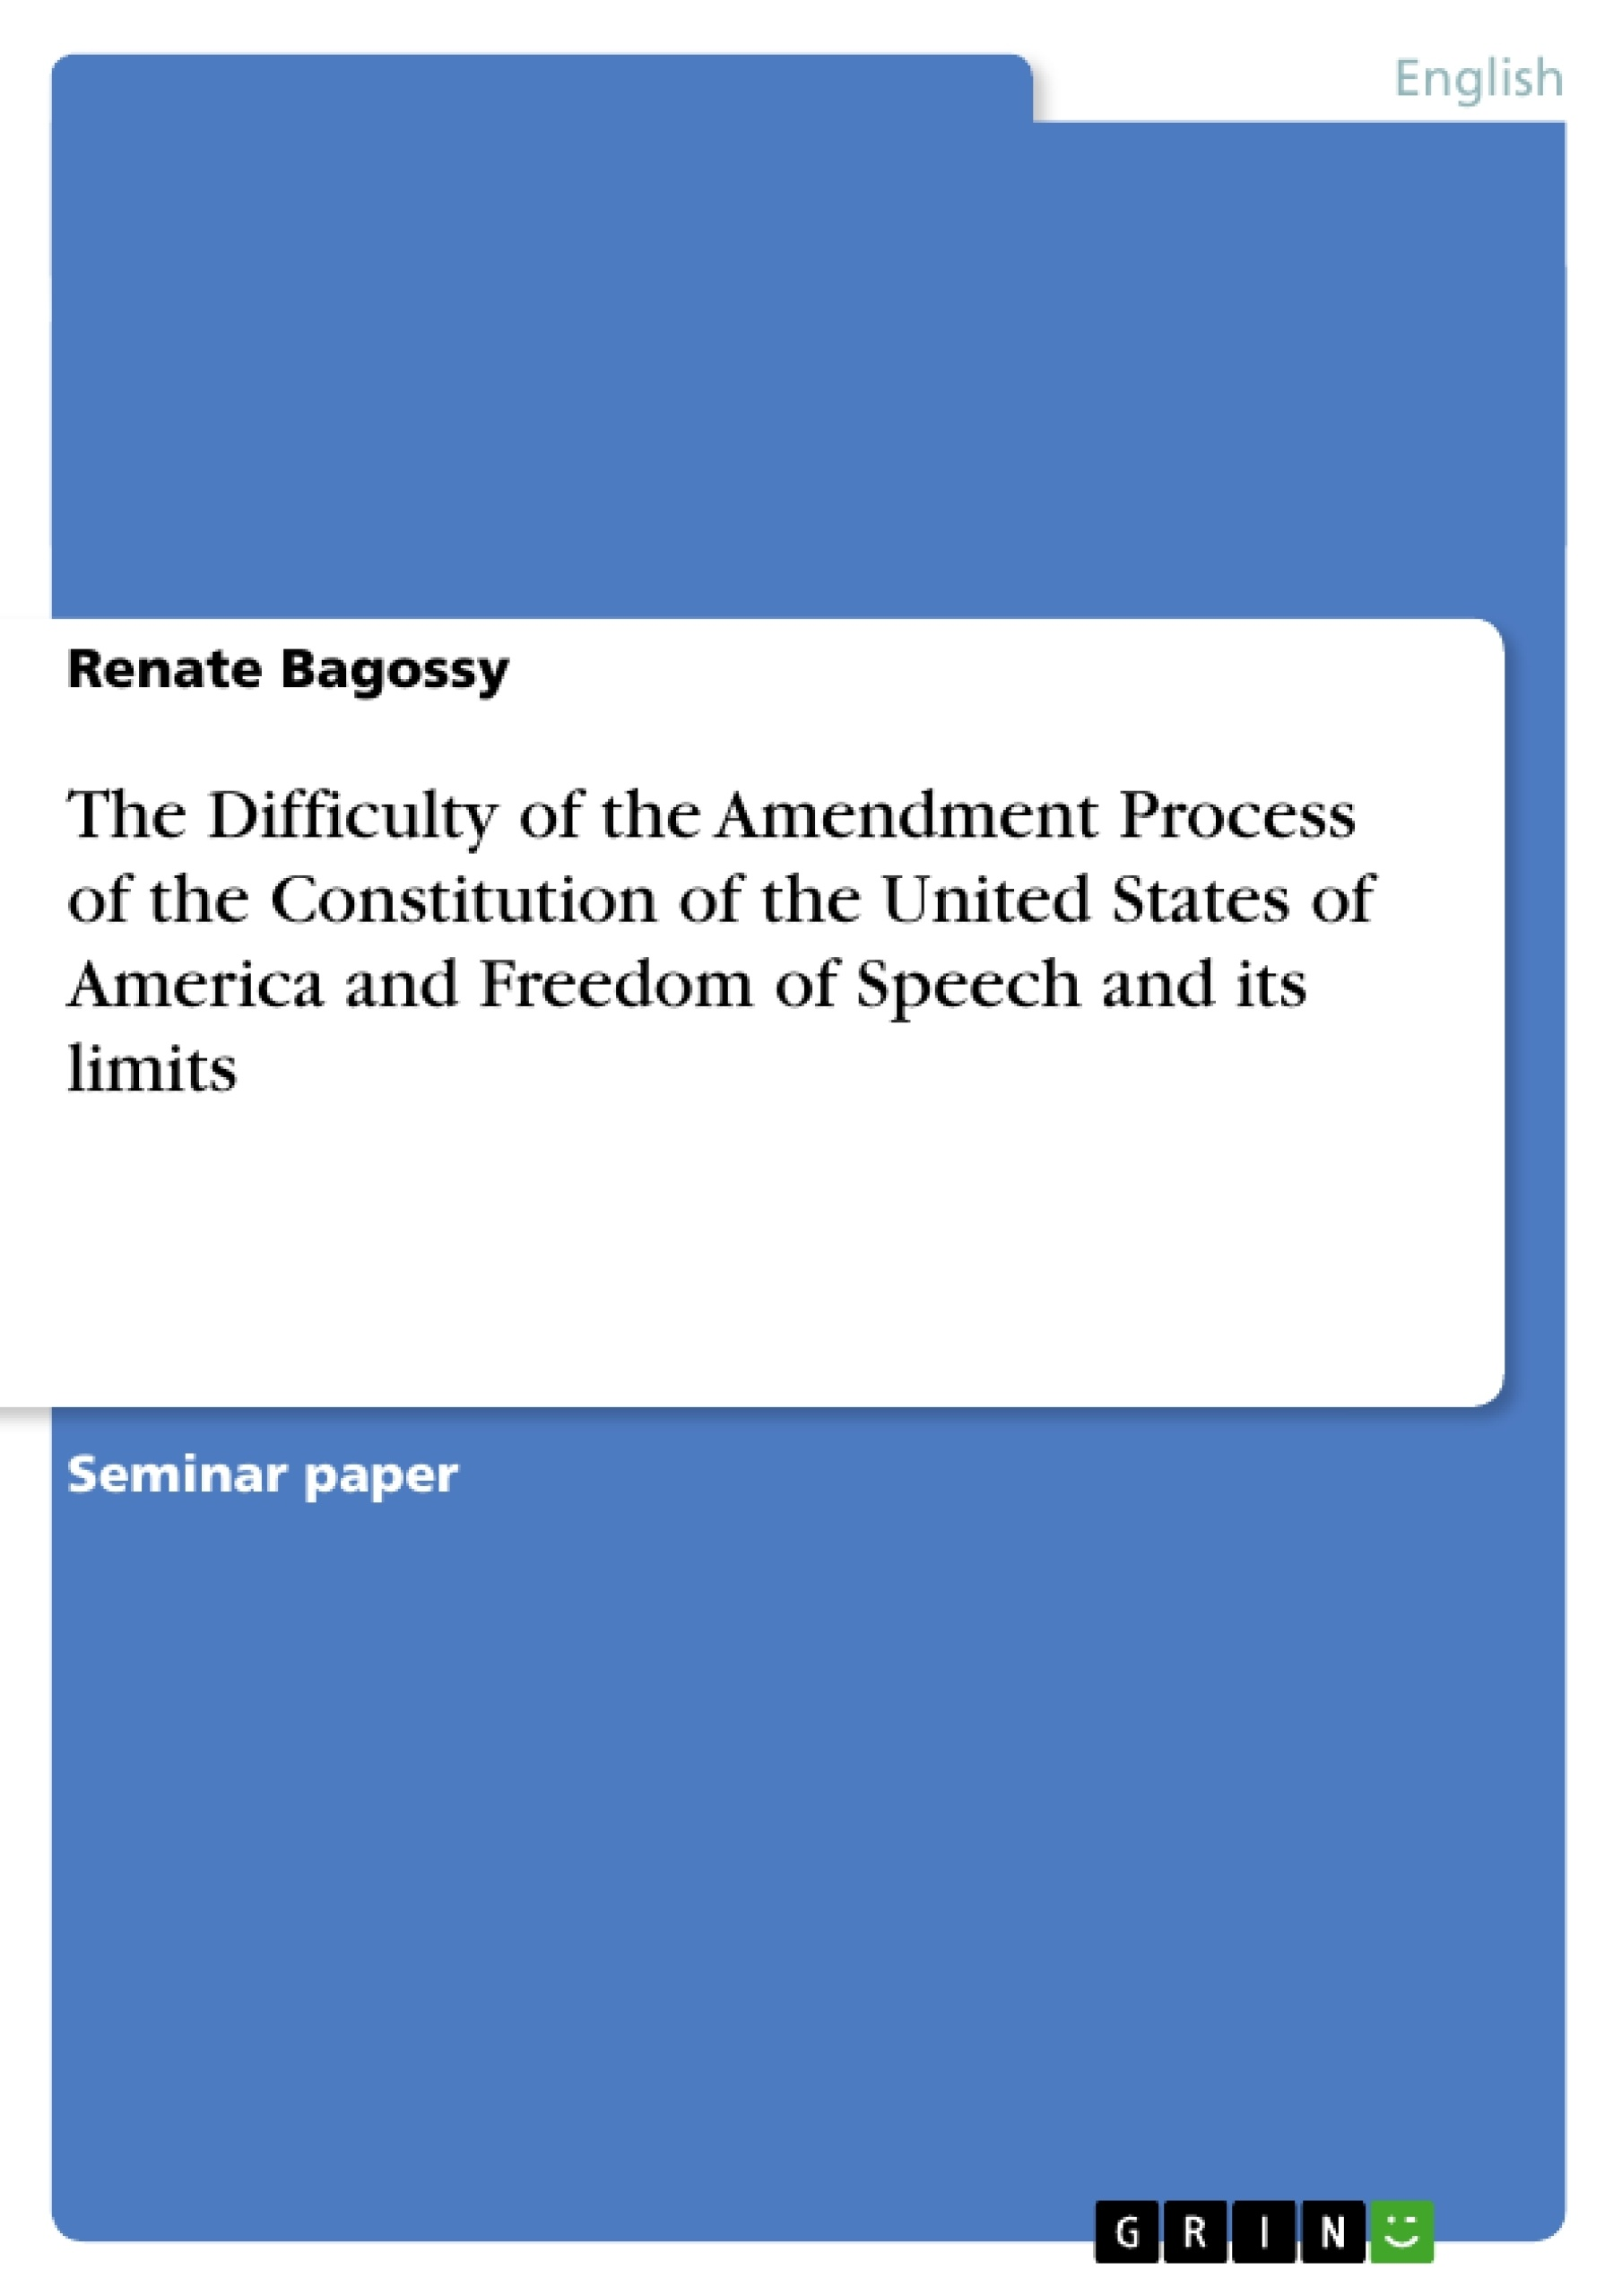 Title: The Difficulty of the Amendment Process of the Constitution of the United States of America and Freedom of Speech and its limits